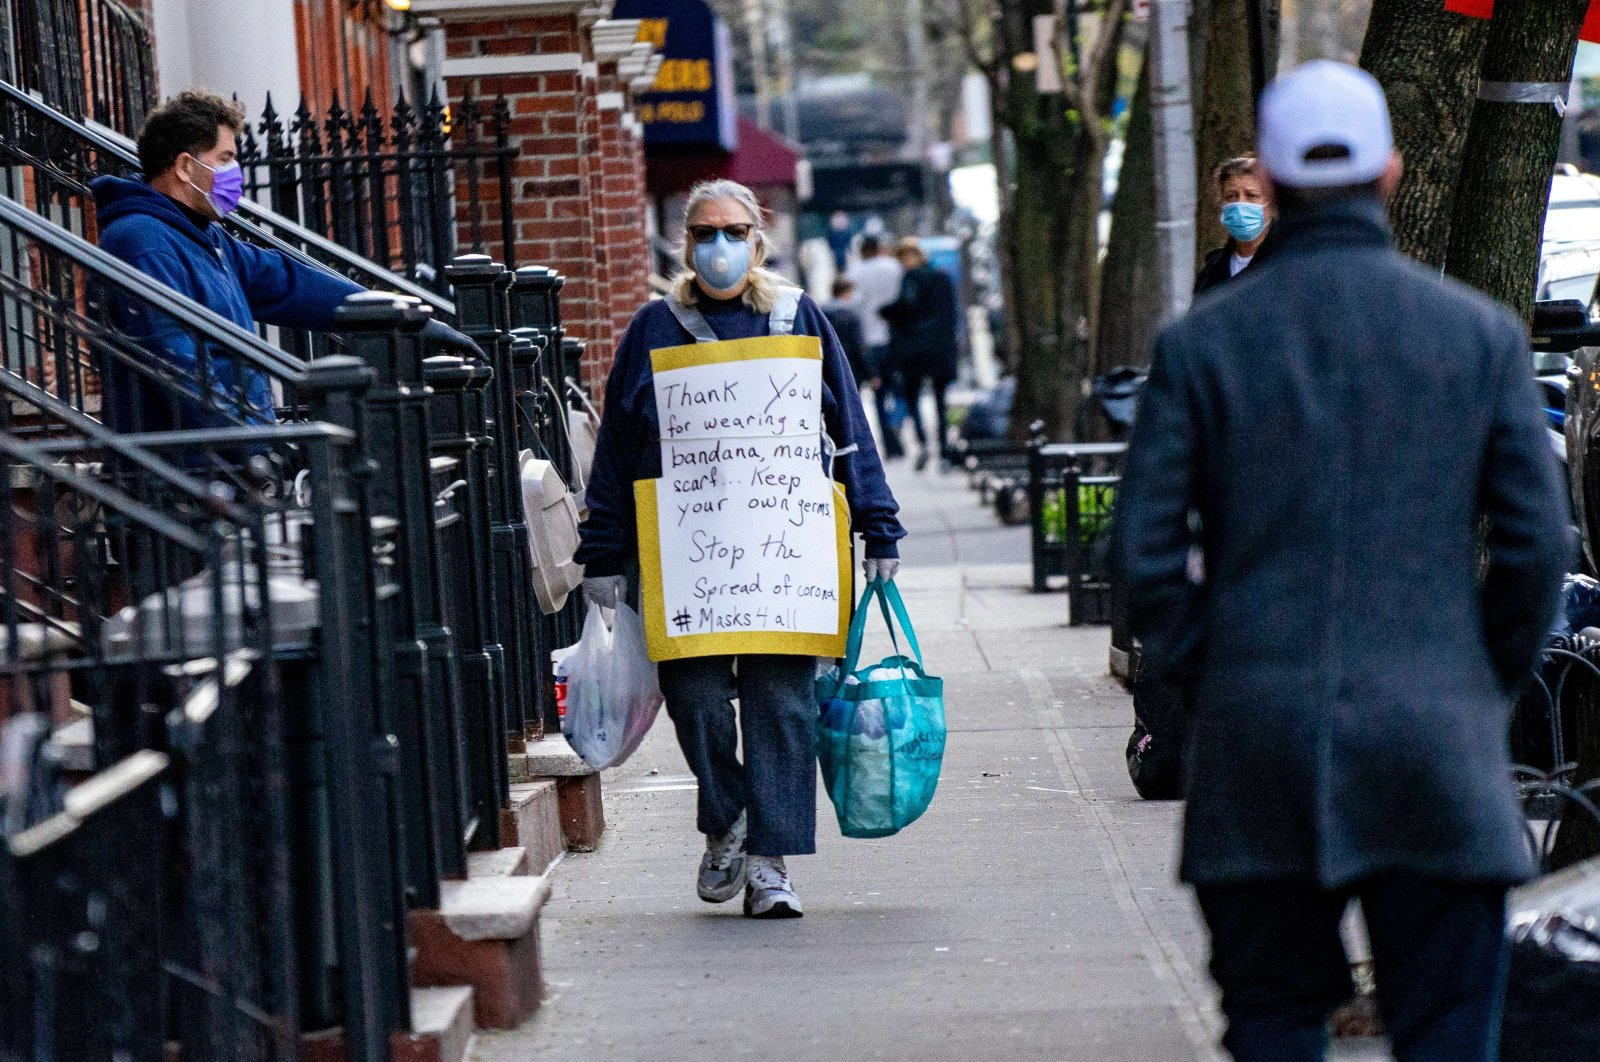 A person walks down a street with a sign thanking people for wearing face coverage on April 15, 2020, in New York City. (AFP Photo)